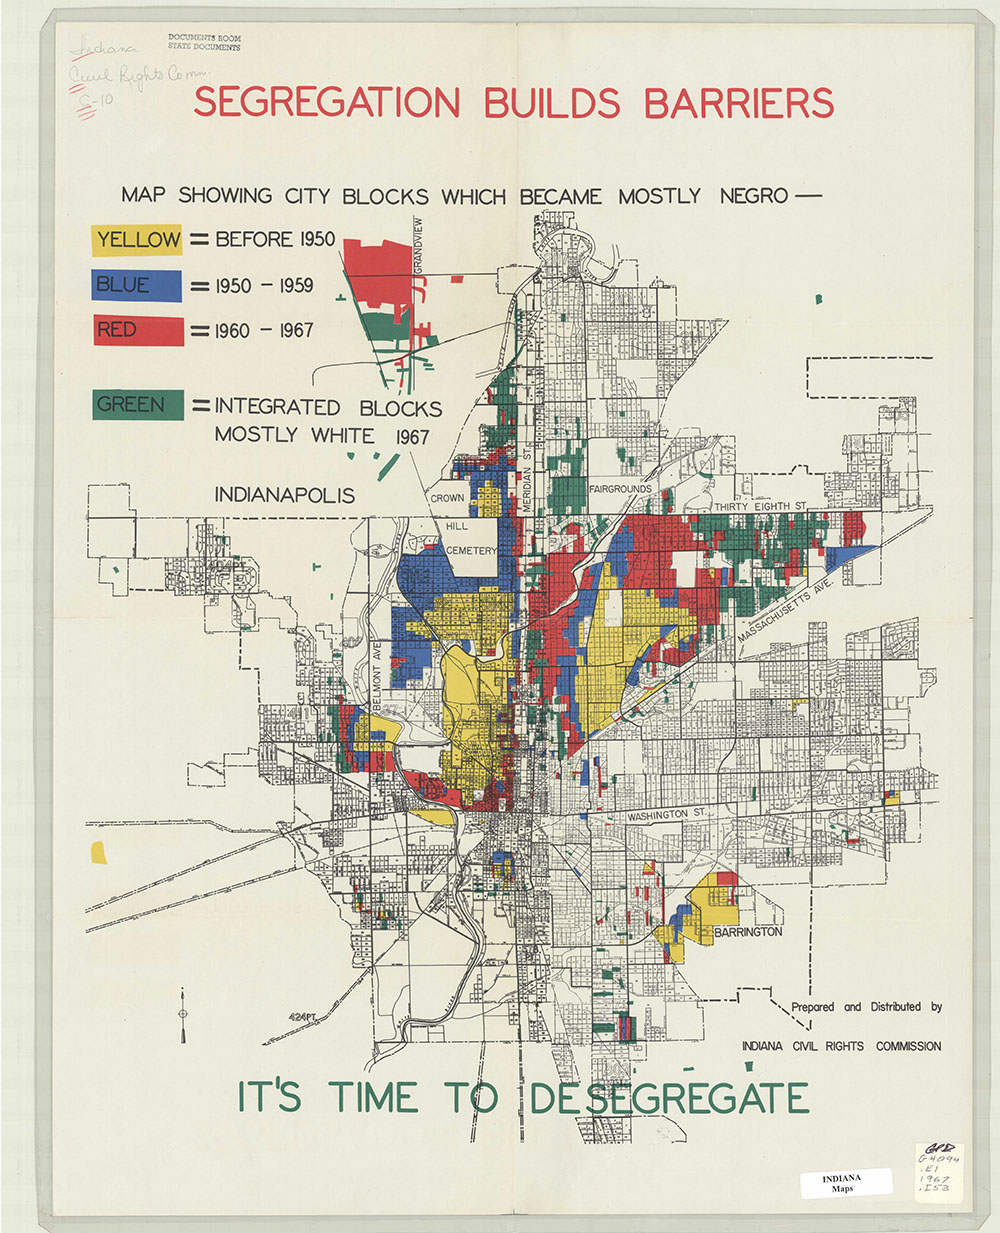 indysegregationmap1967small1.jpg